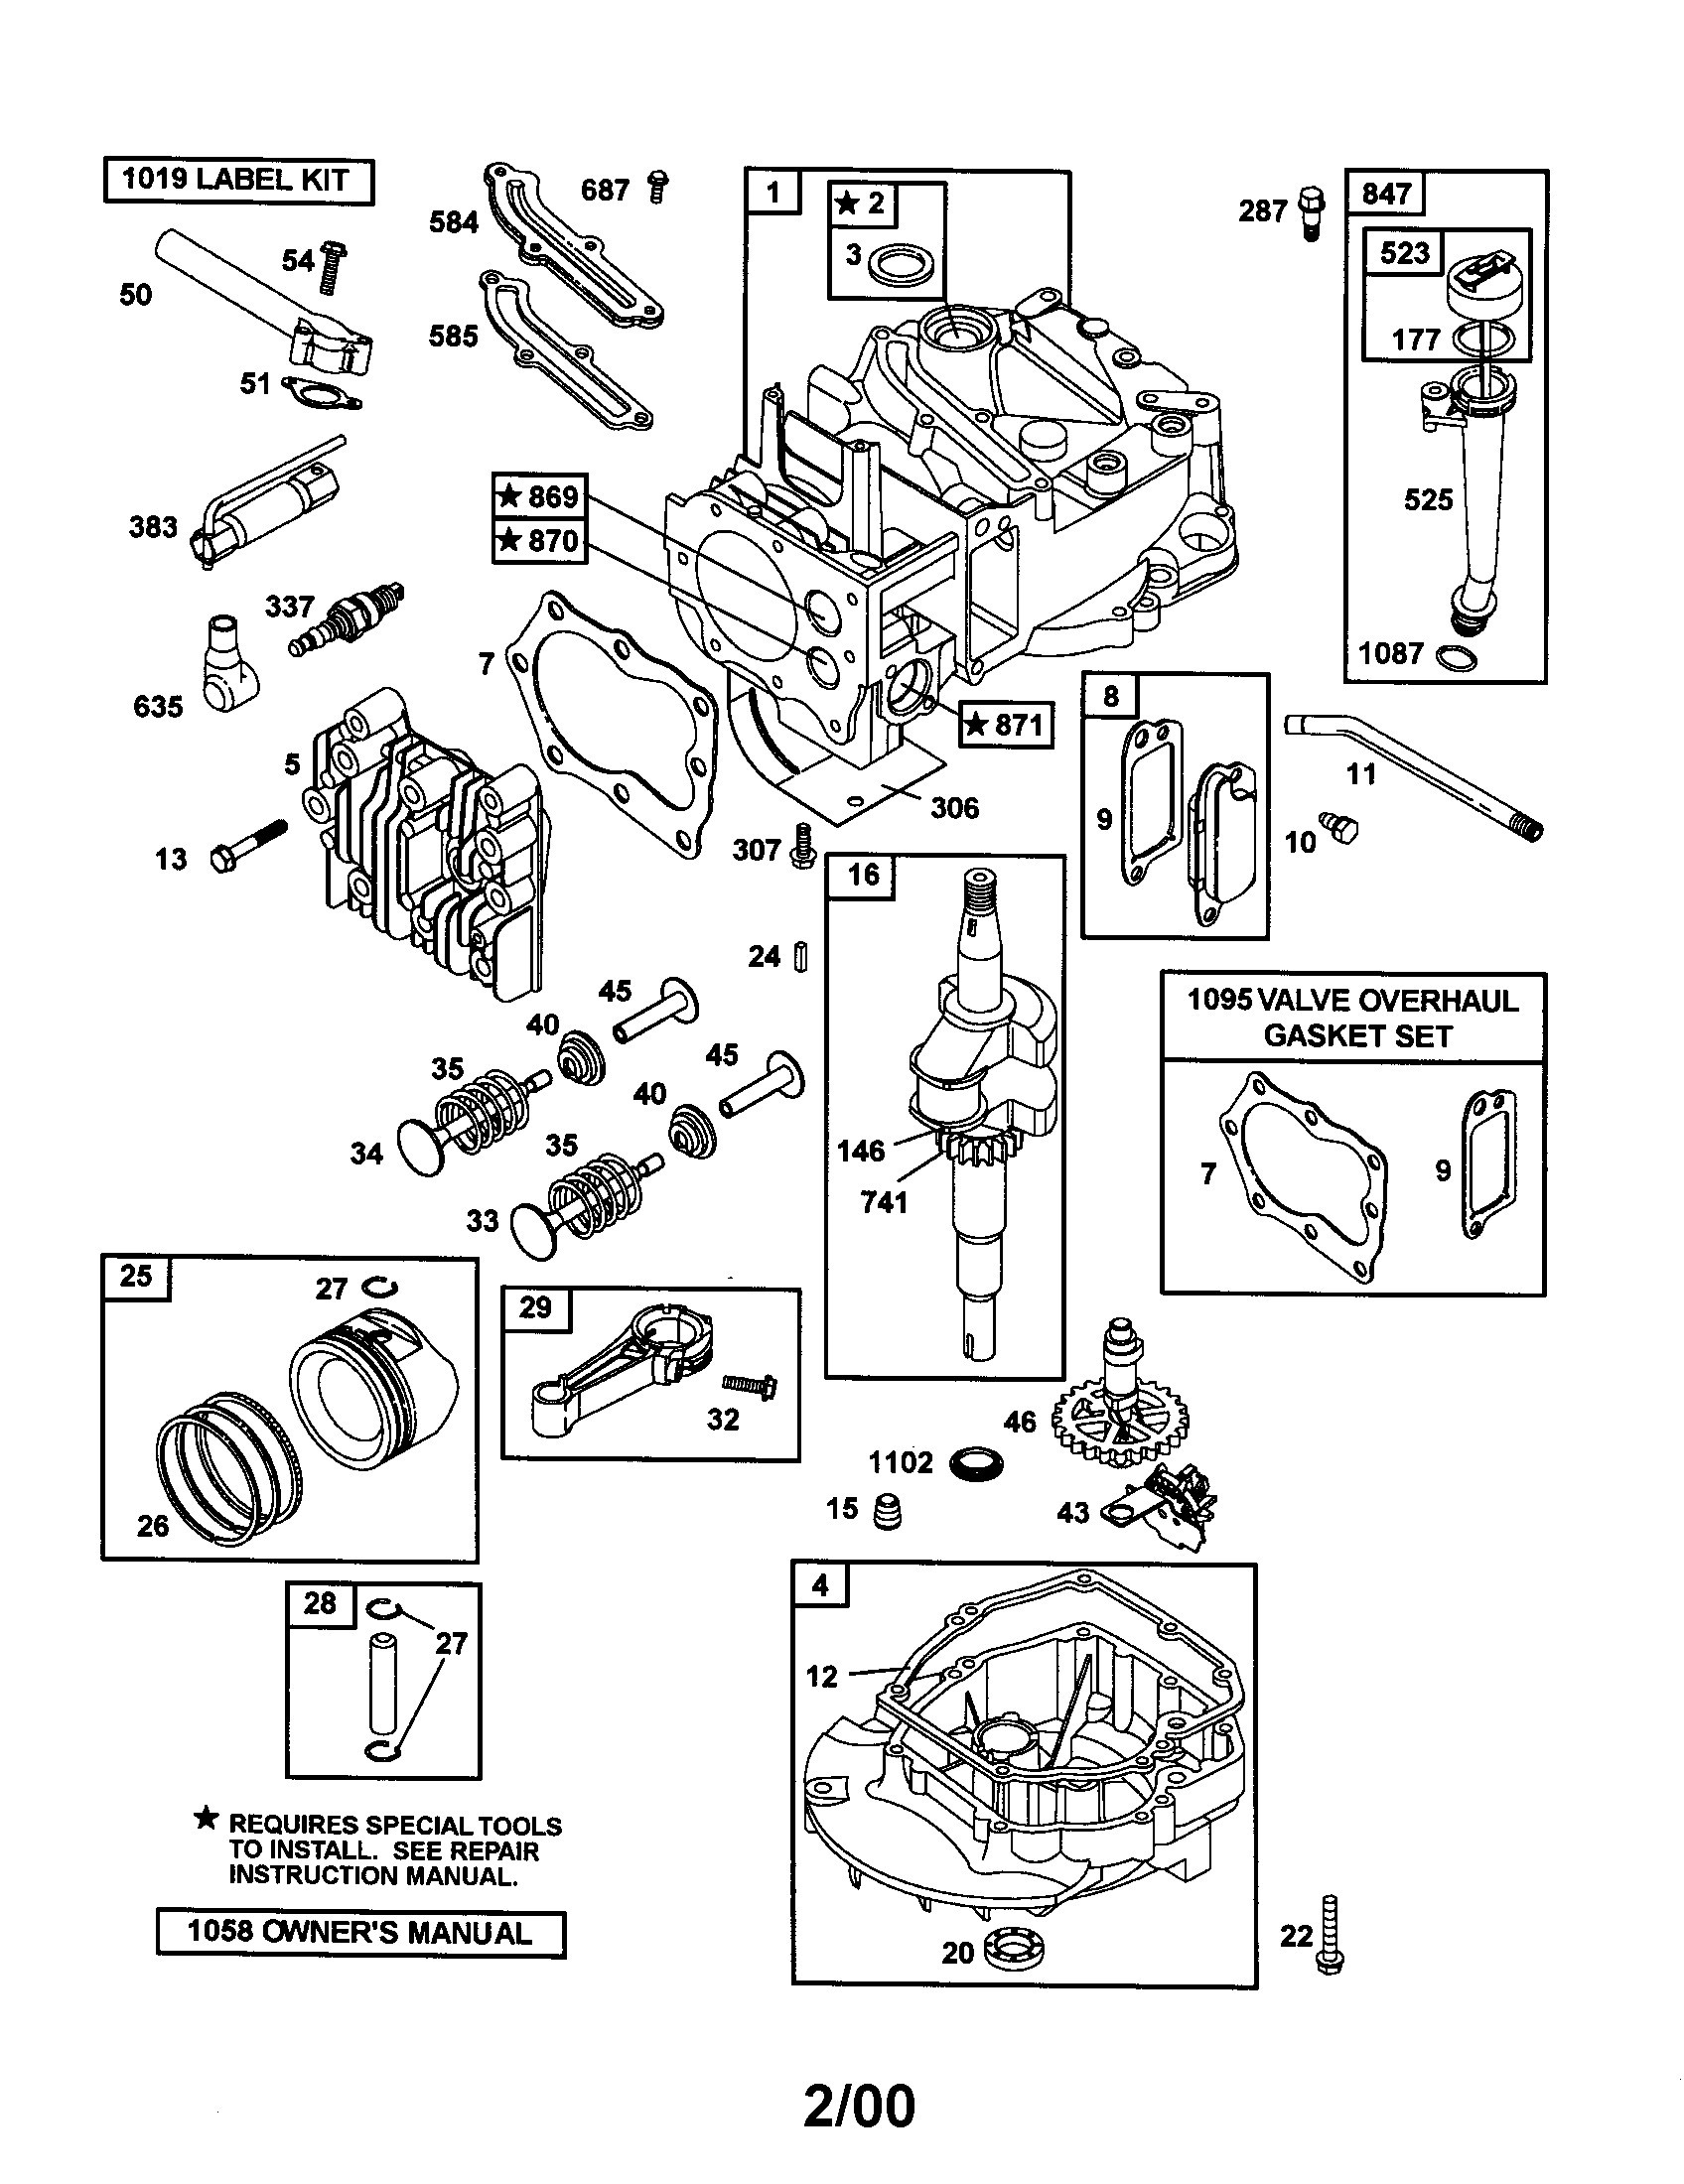 parts diagram for briggs stratton engine briggs stratton